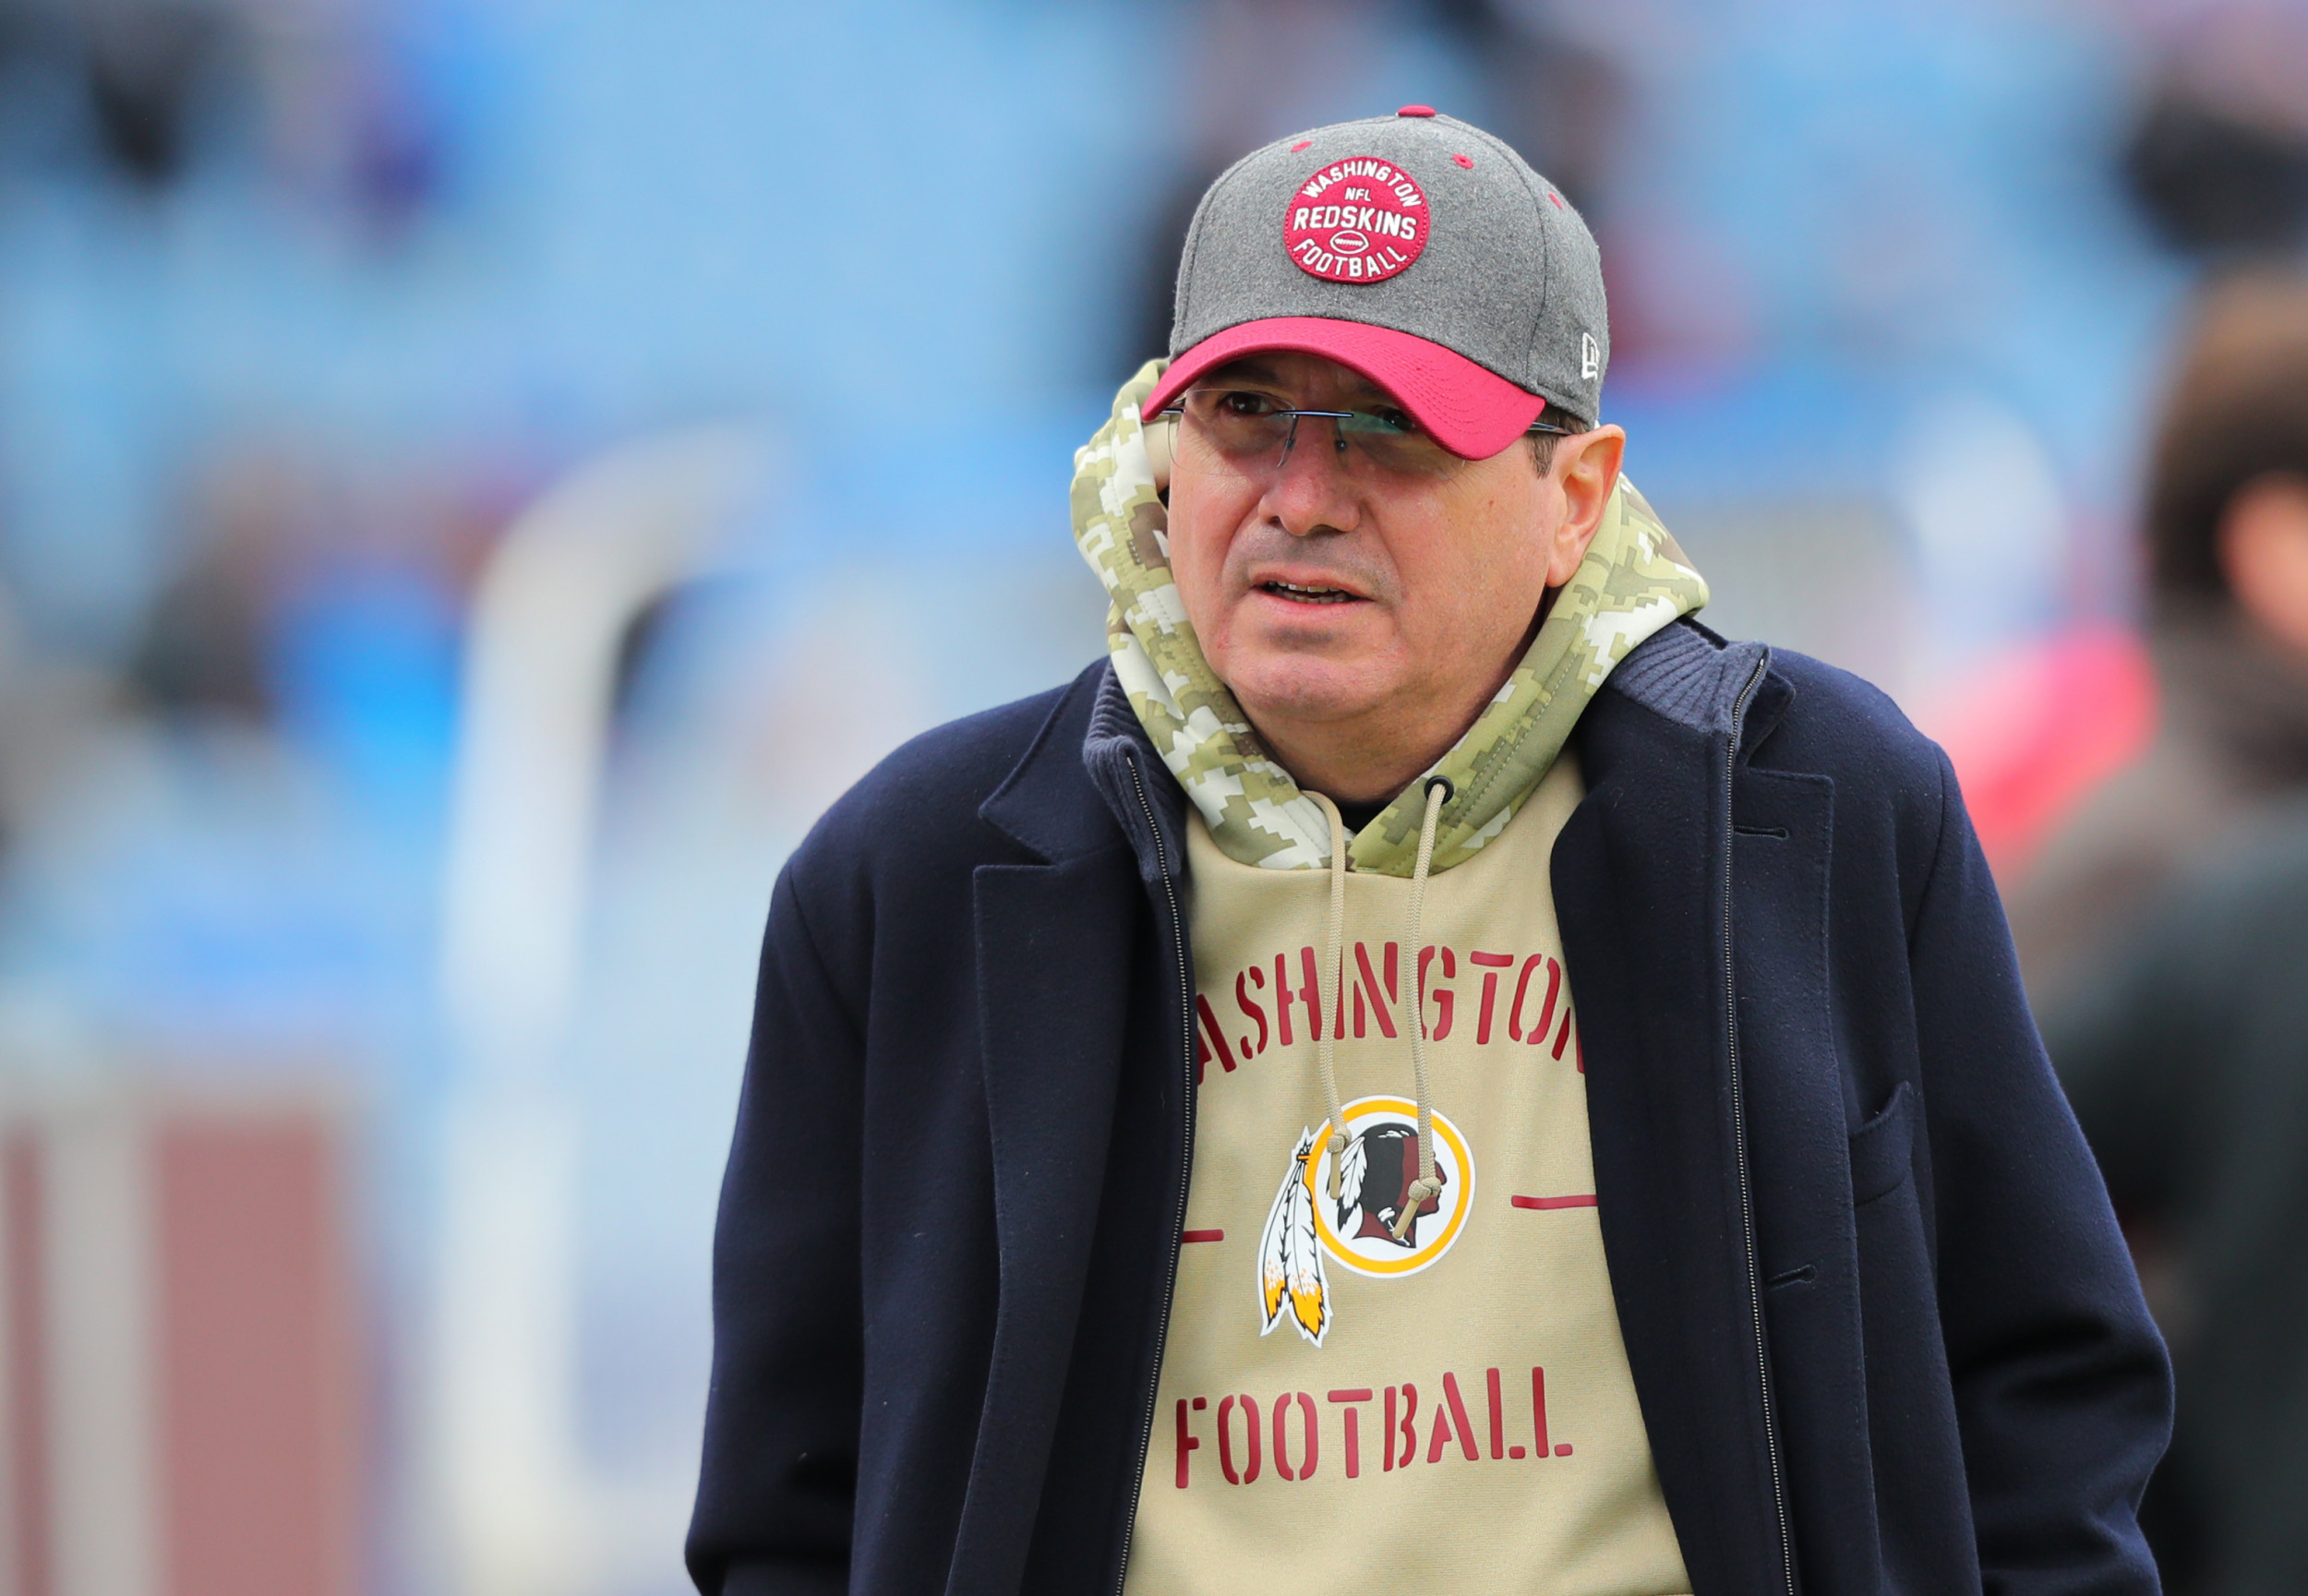 """From """"NEVER"""" to name change, how Dan Snyder lost Redskins battle"""